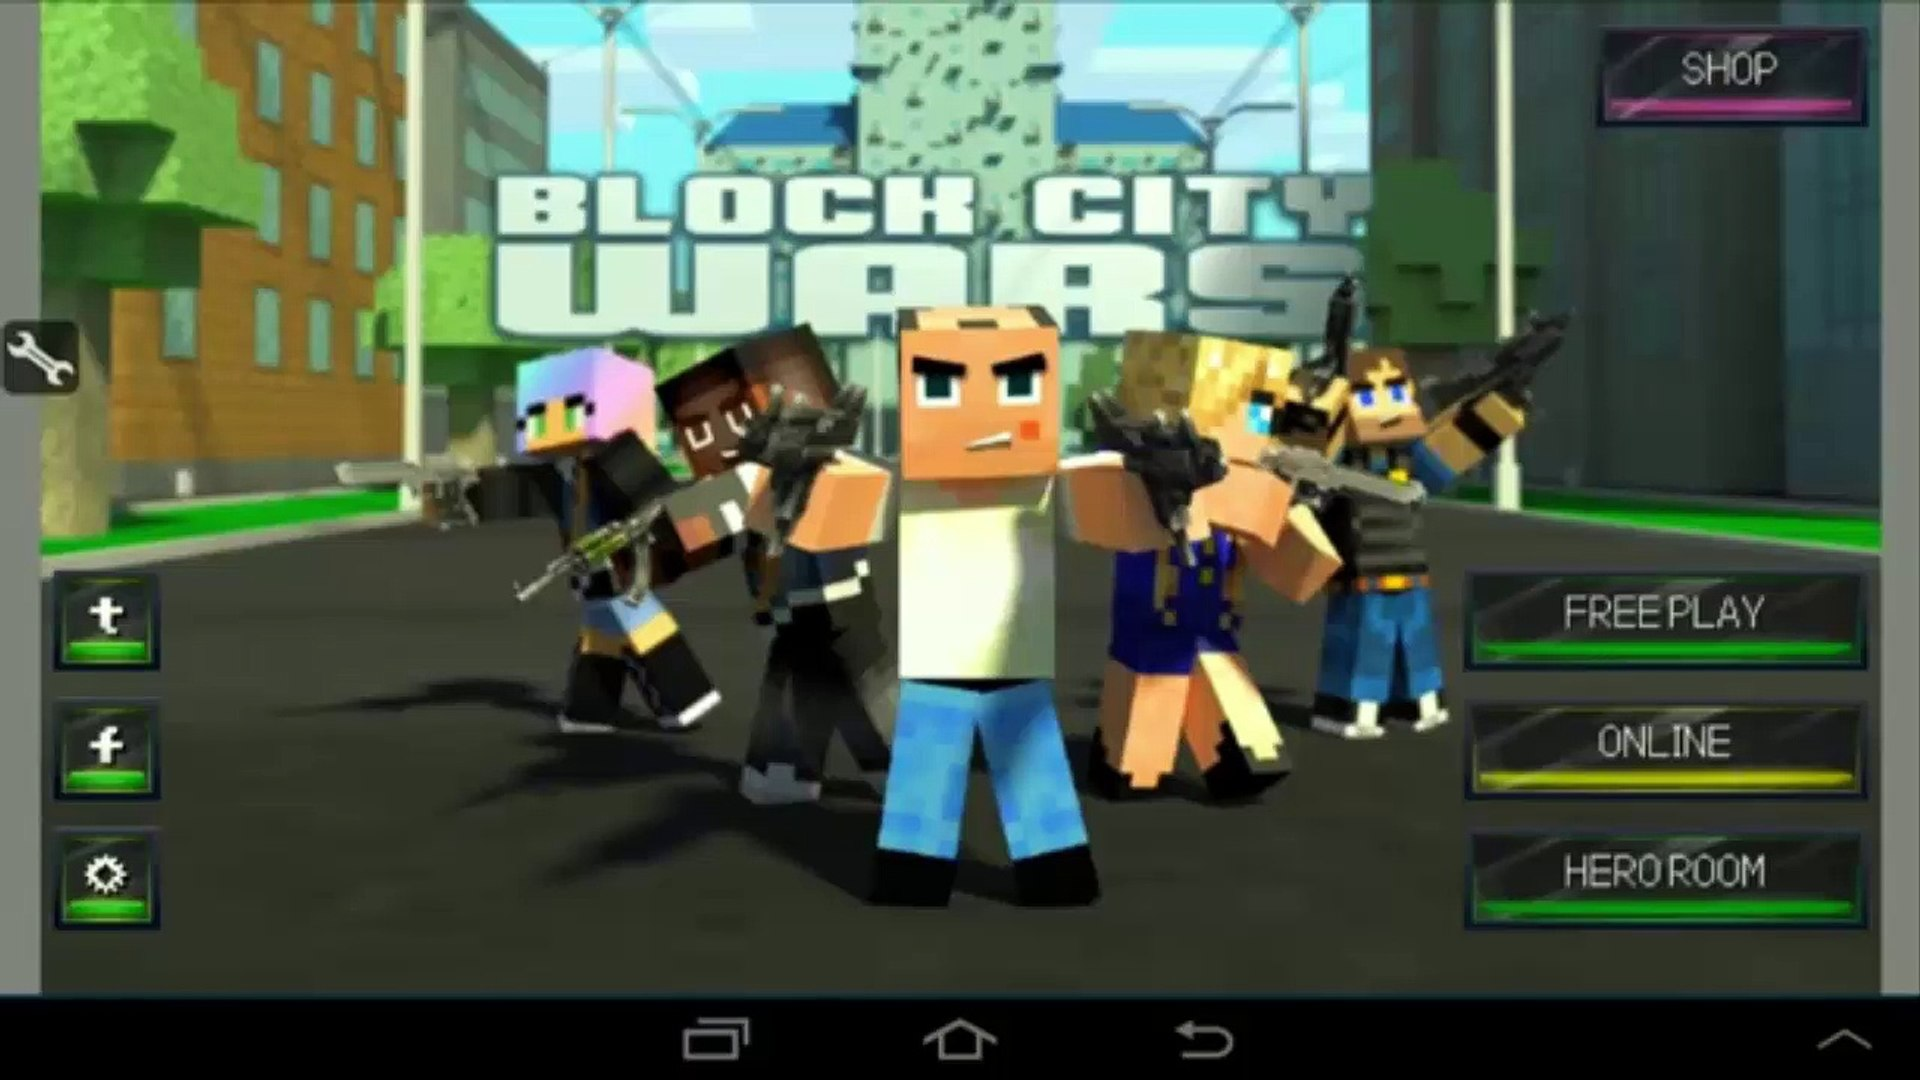 block city wars free online game